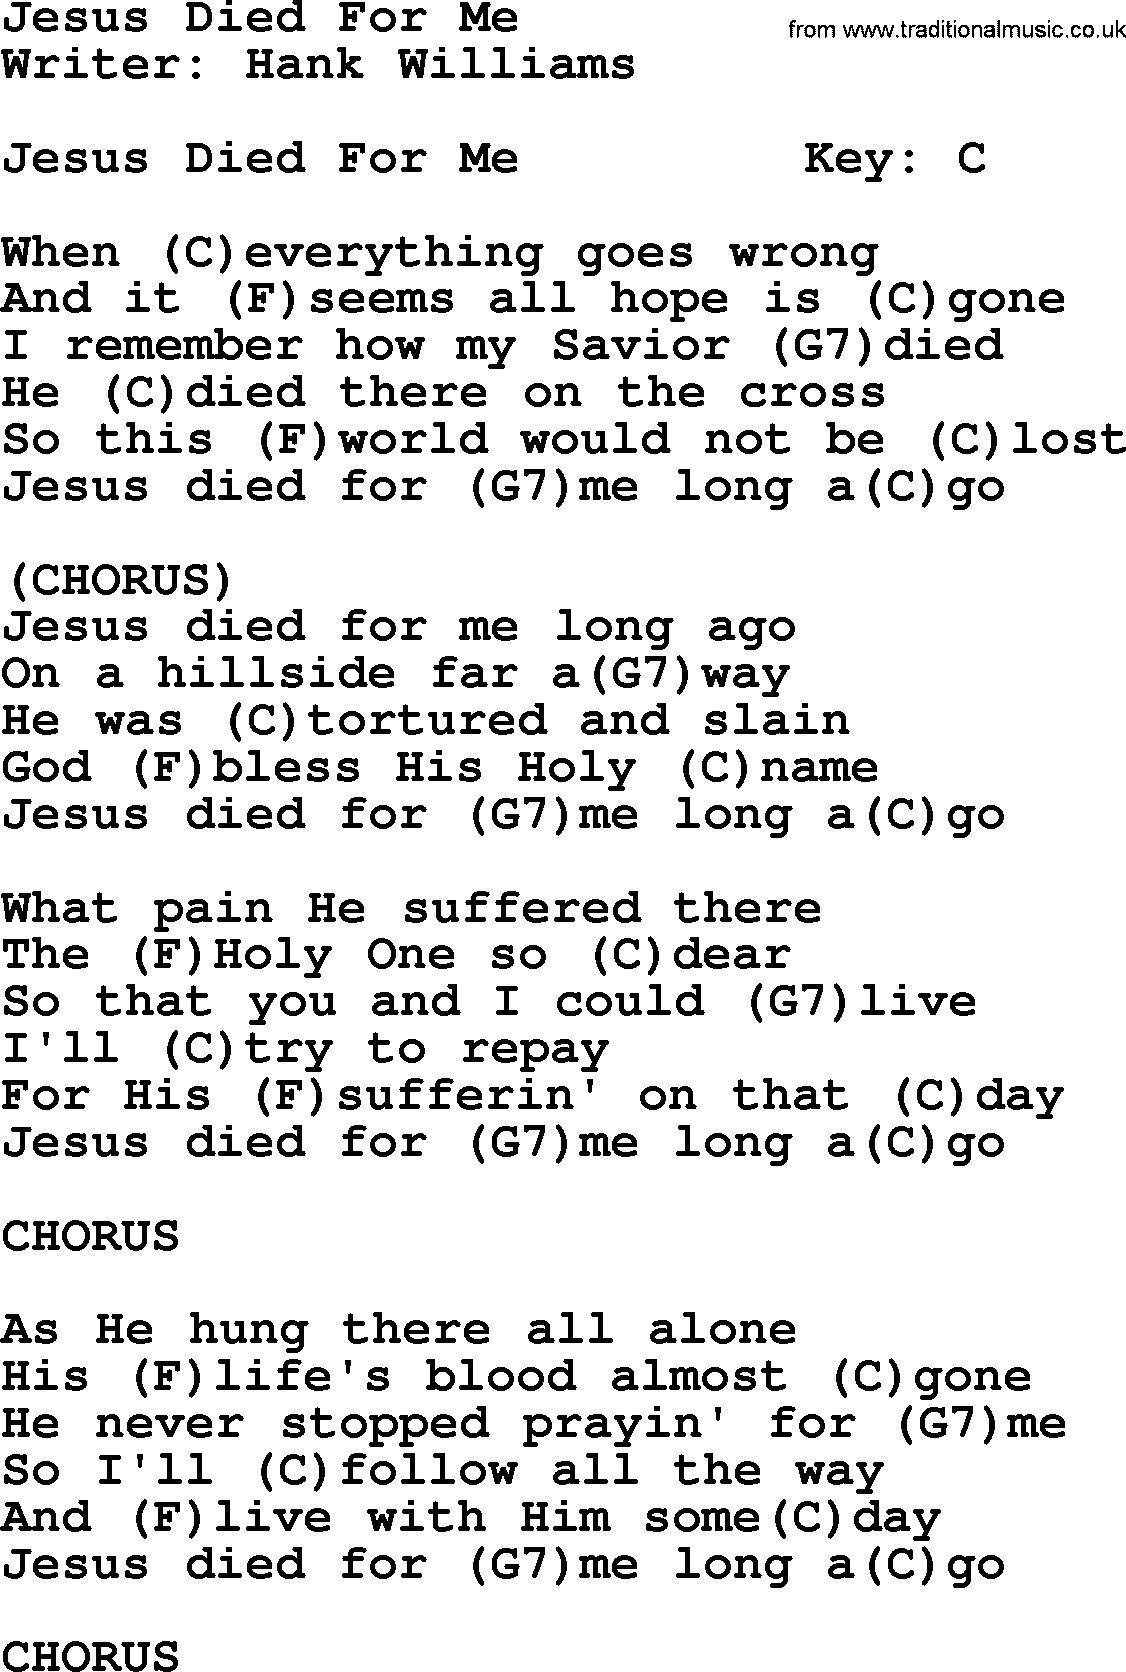 Hank Williams Song Jesus Died For Me Lyrics And Chords